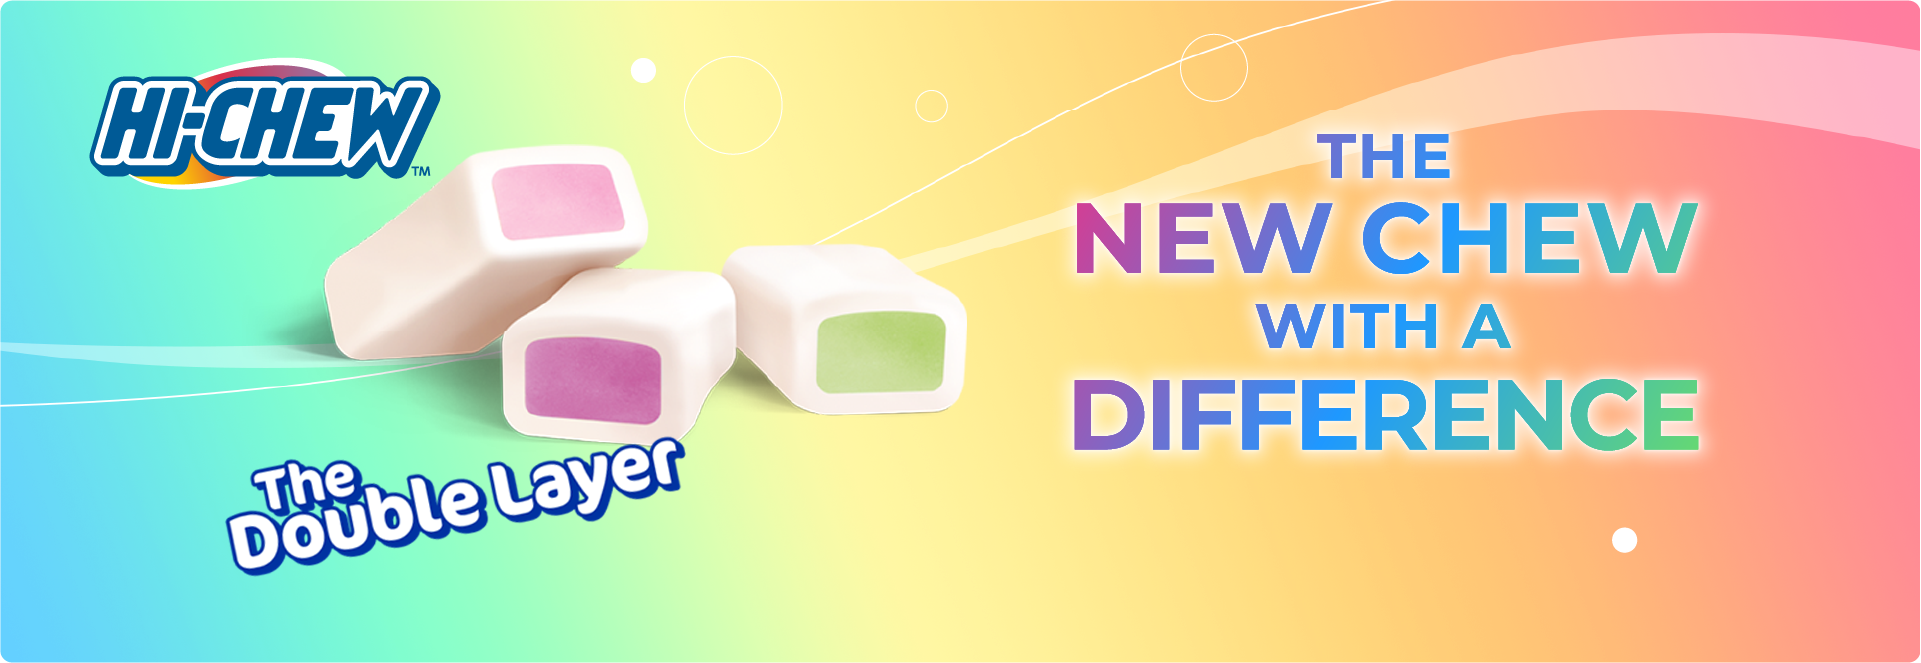 HI-CHEW product banner